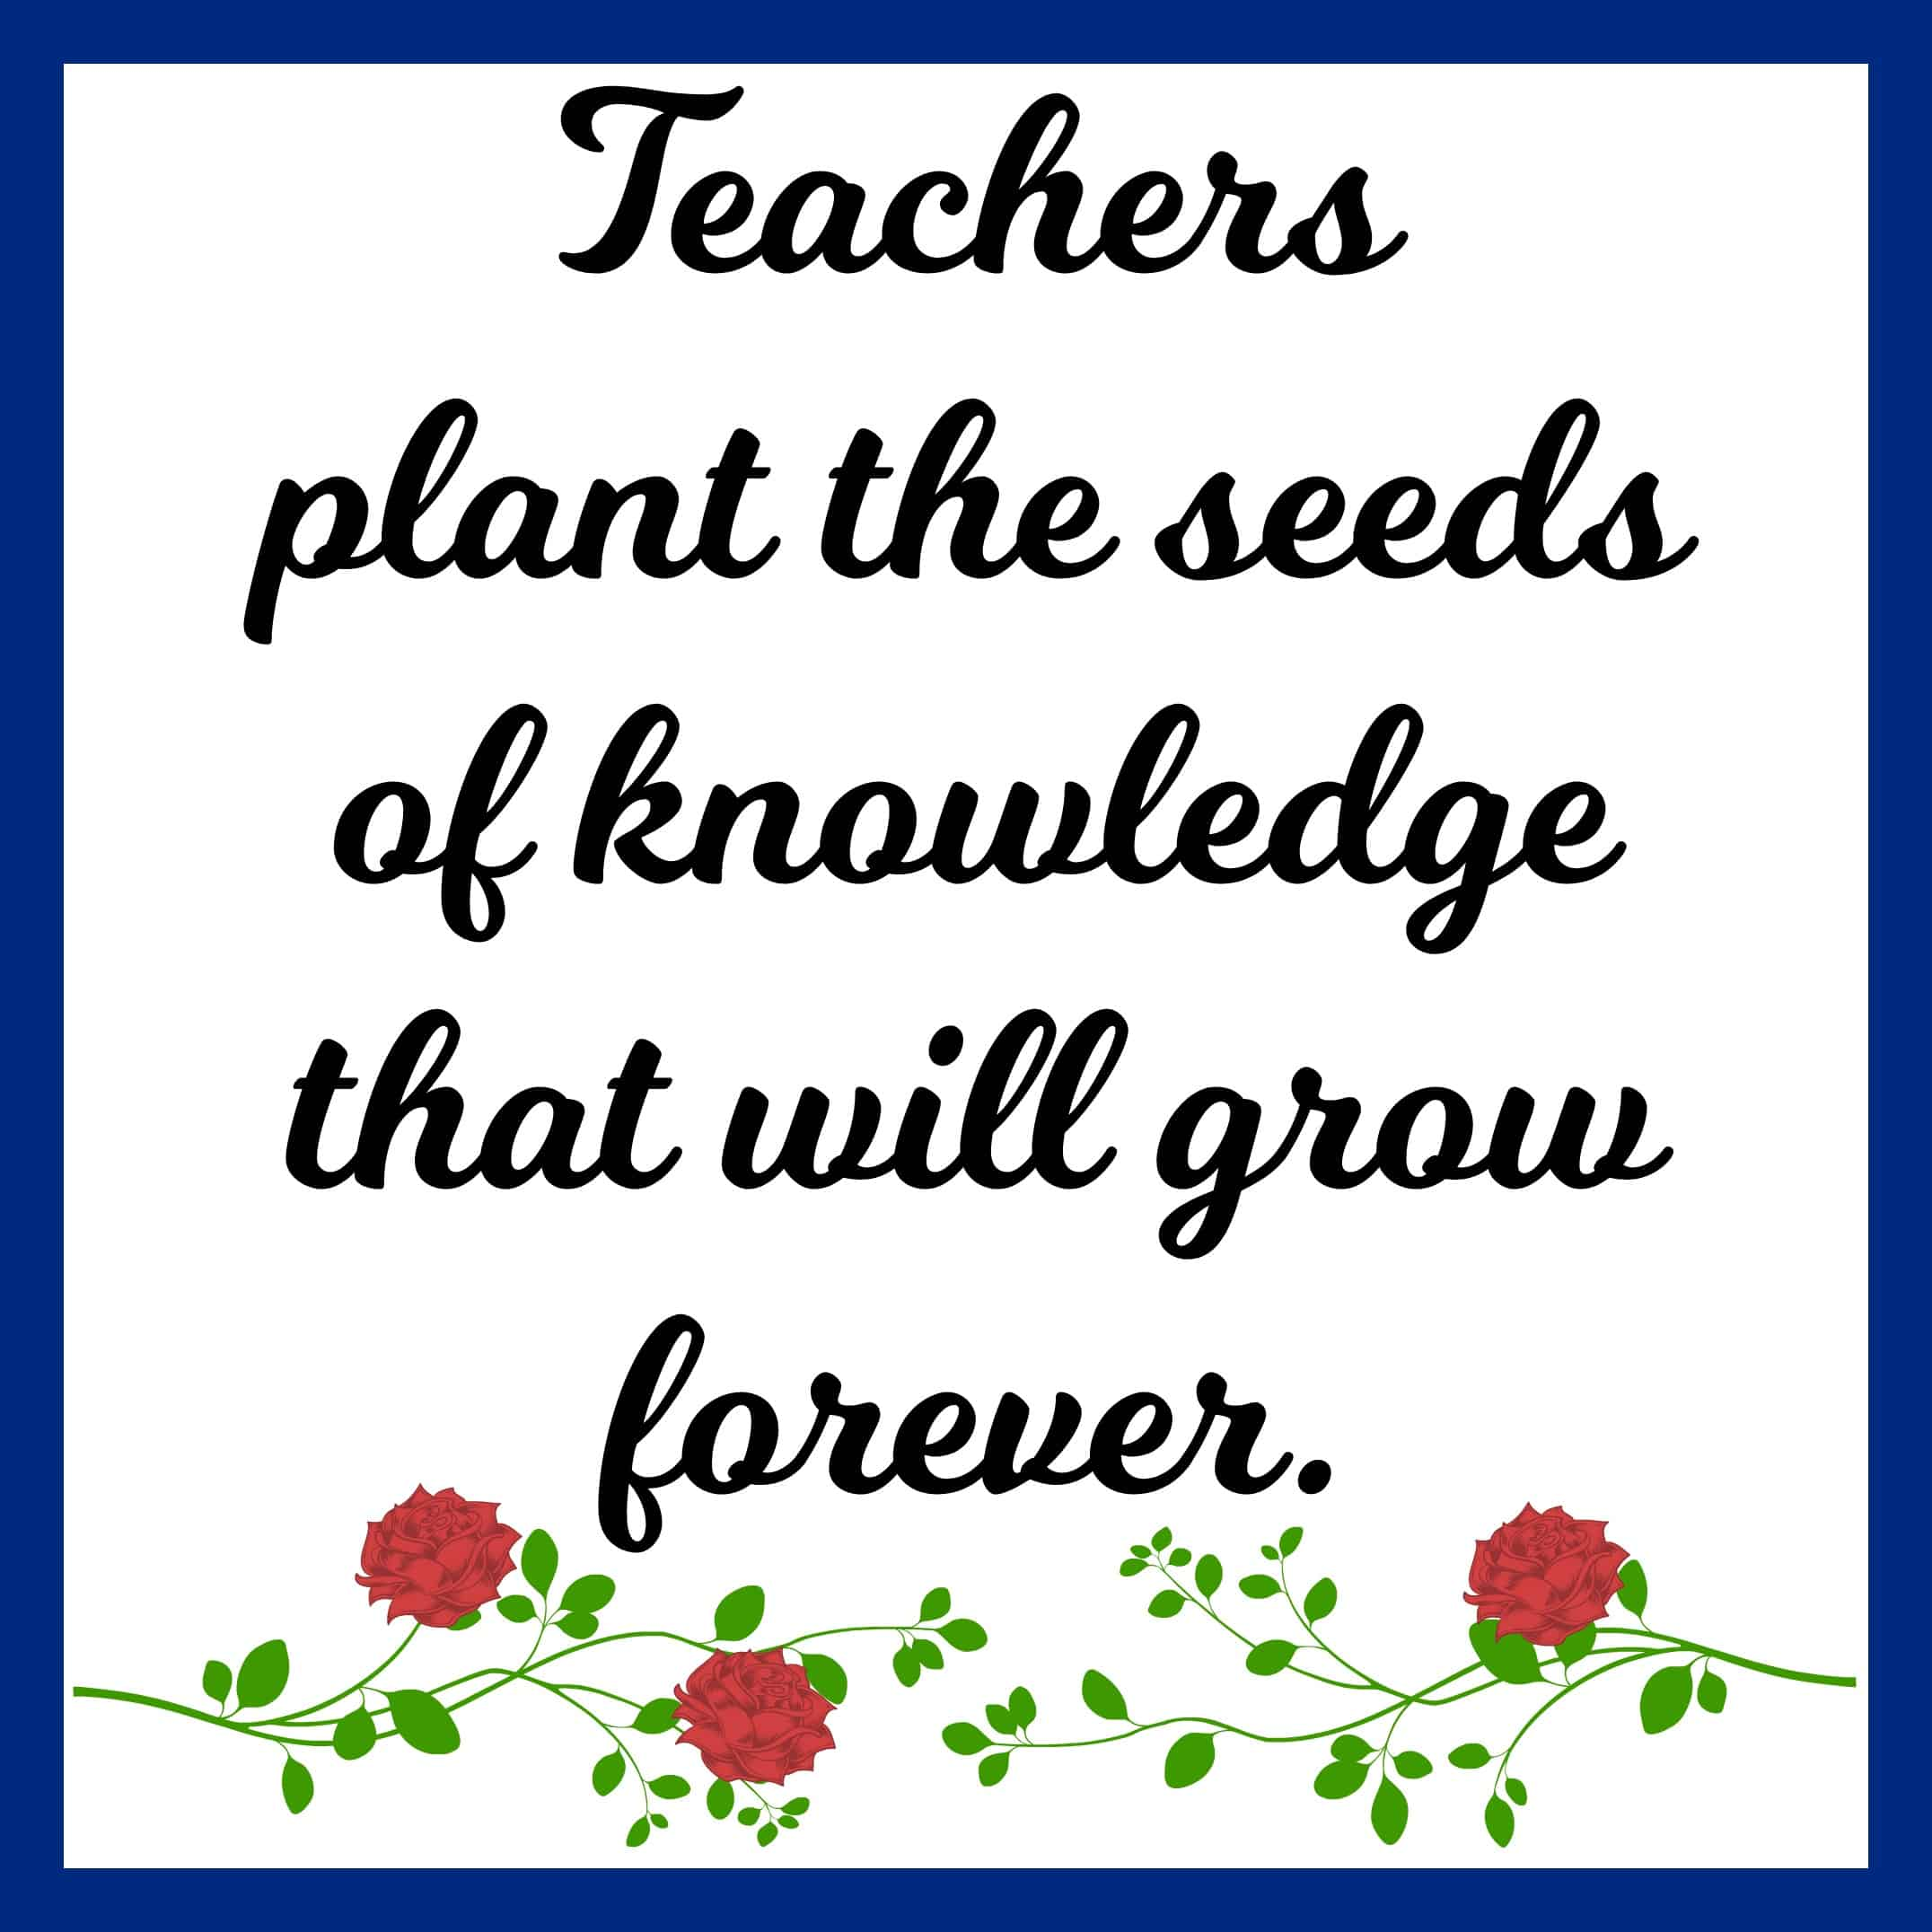 Gardening teacher gift free printable tag teacher appreciation teacher garden gift tag here is the free printable tag you can save the image to your computer and print it out as many times as youd like negle Gallery